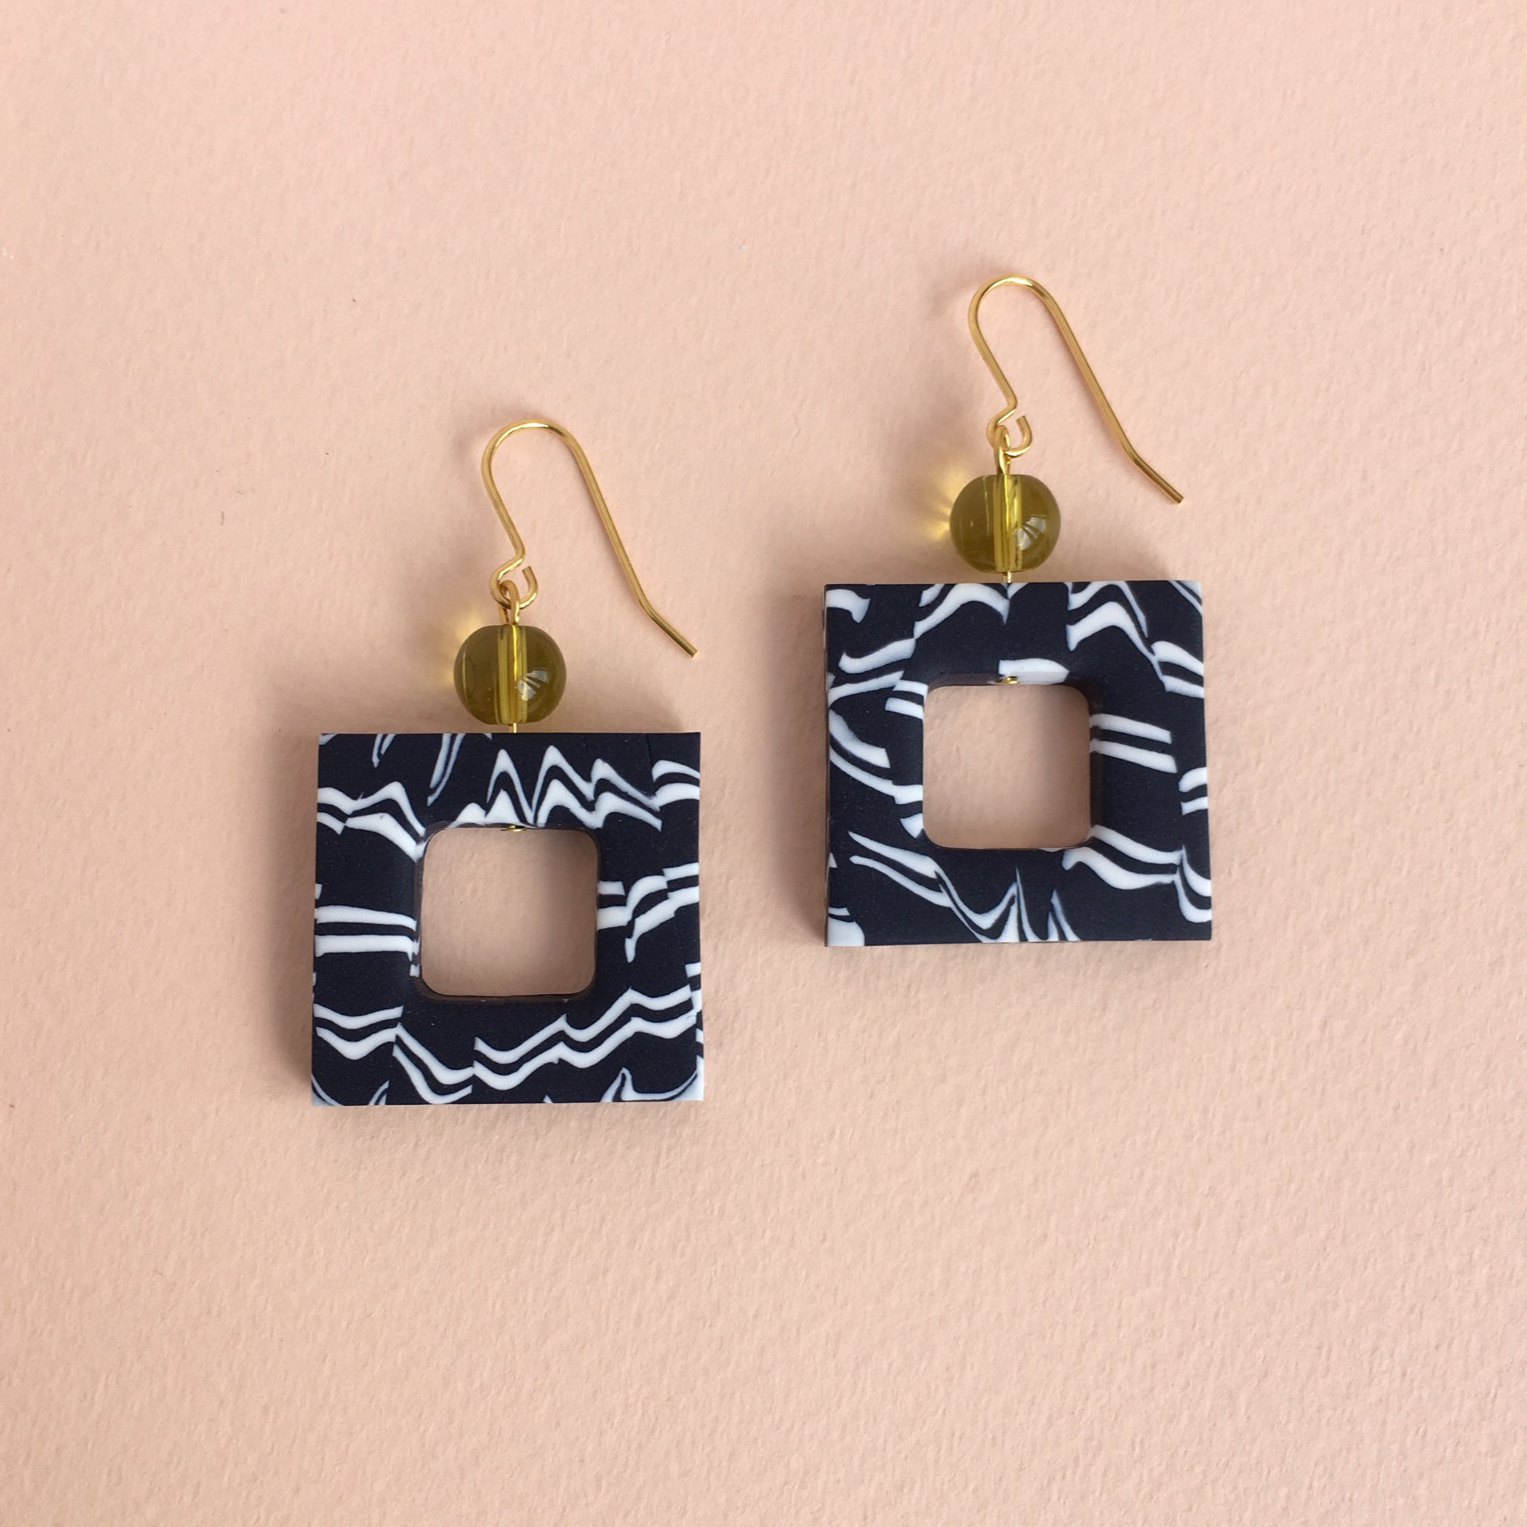 shell earrings - navy.jpg